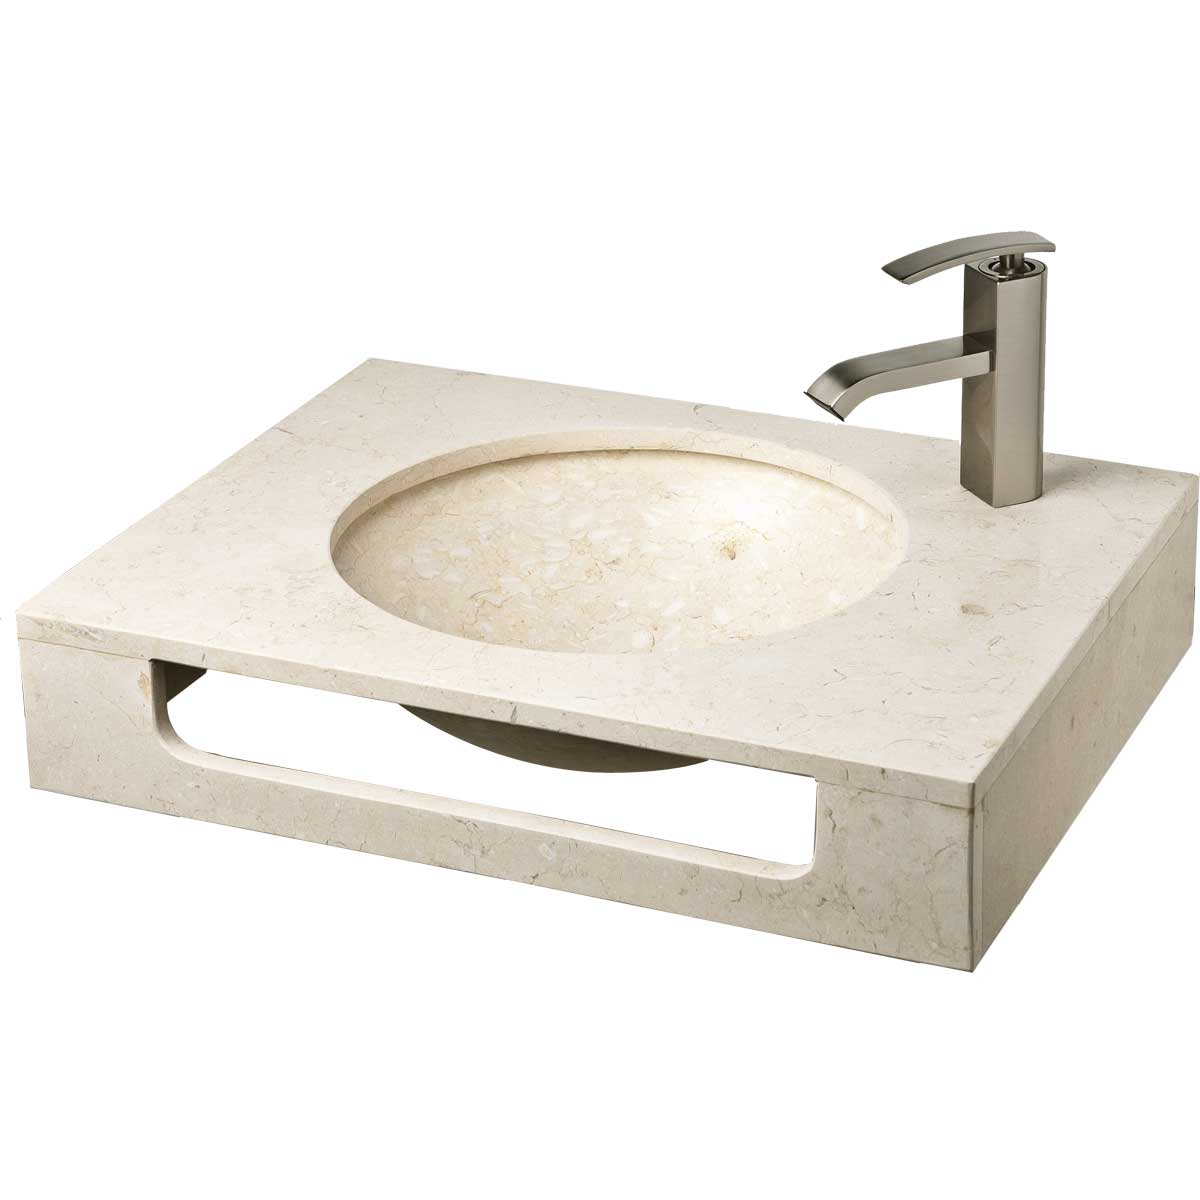 Wall mount vanity galala natural stone sink lm t086gl on Wall mount vanity